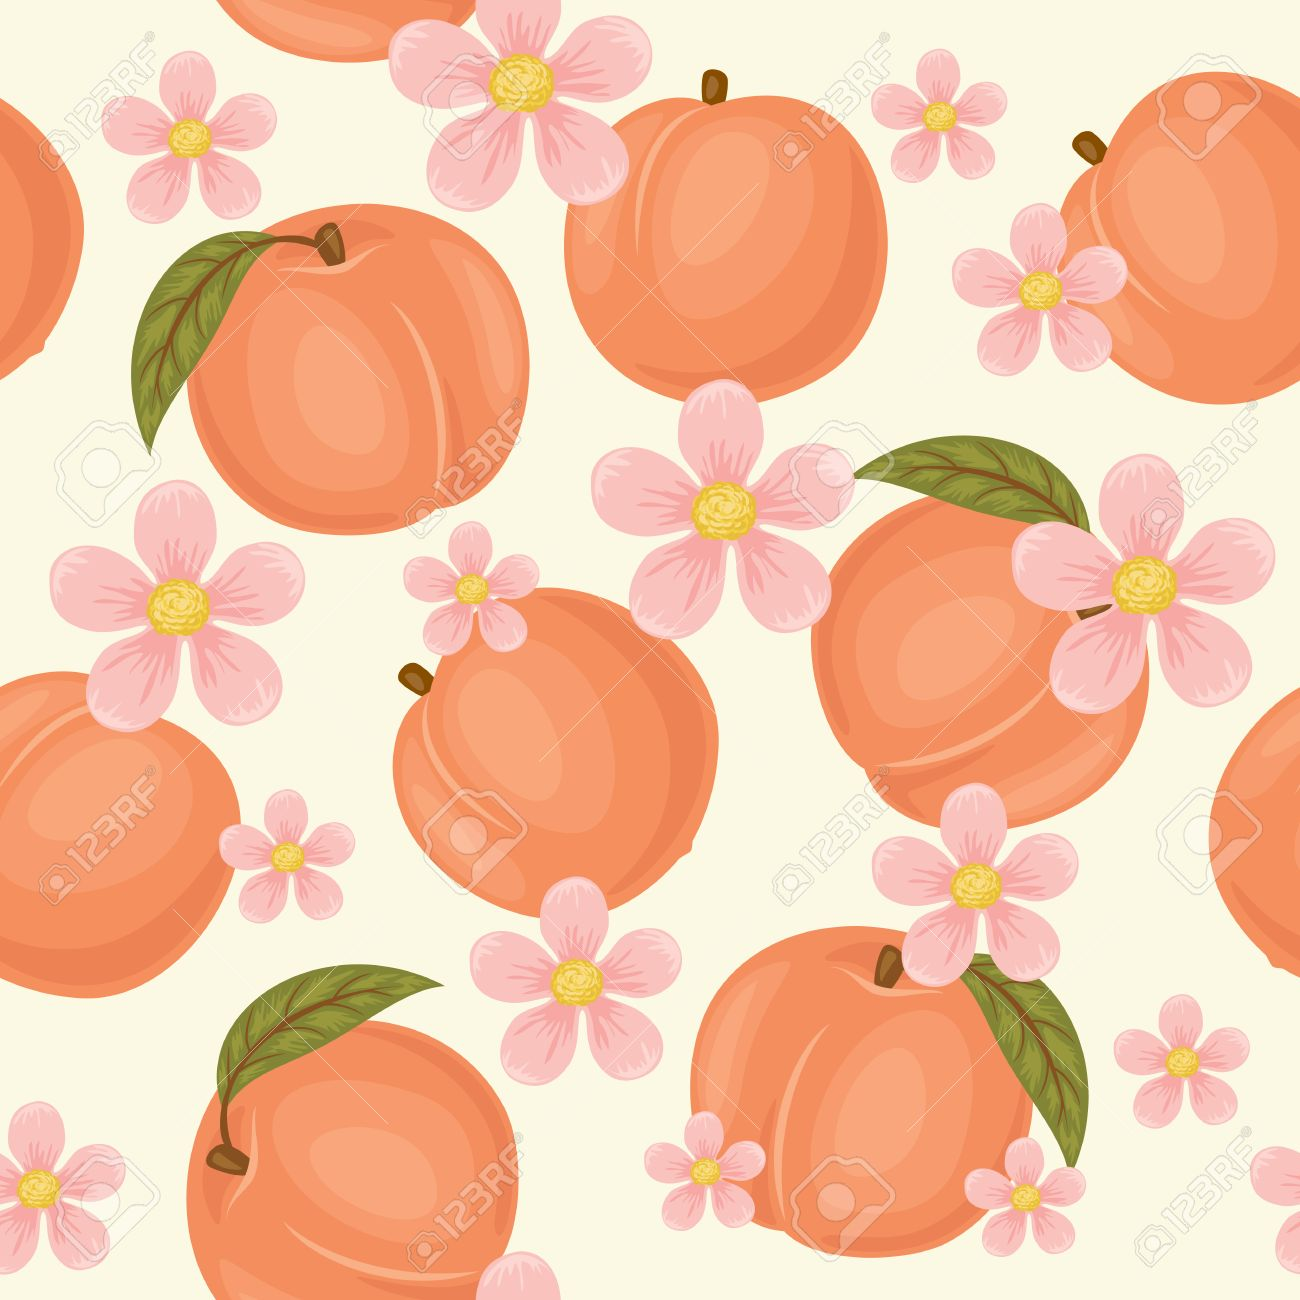 Peach Seamless Pattern Peach Wallpaper Peaches With Green Leaves